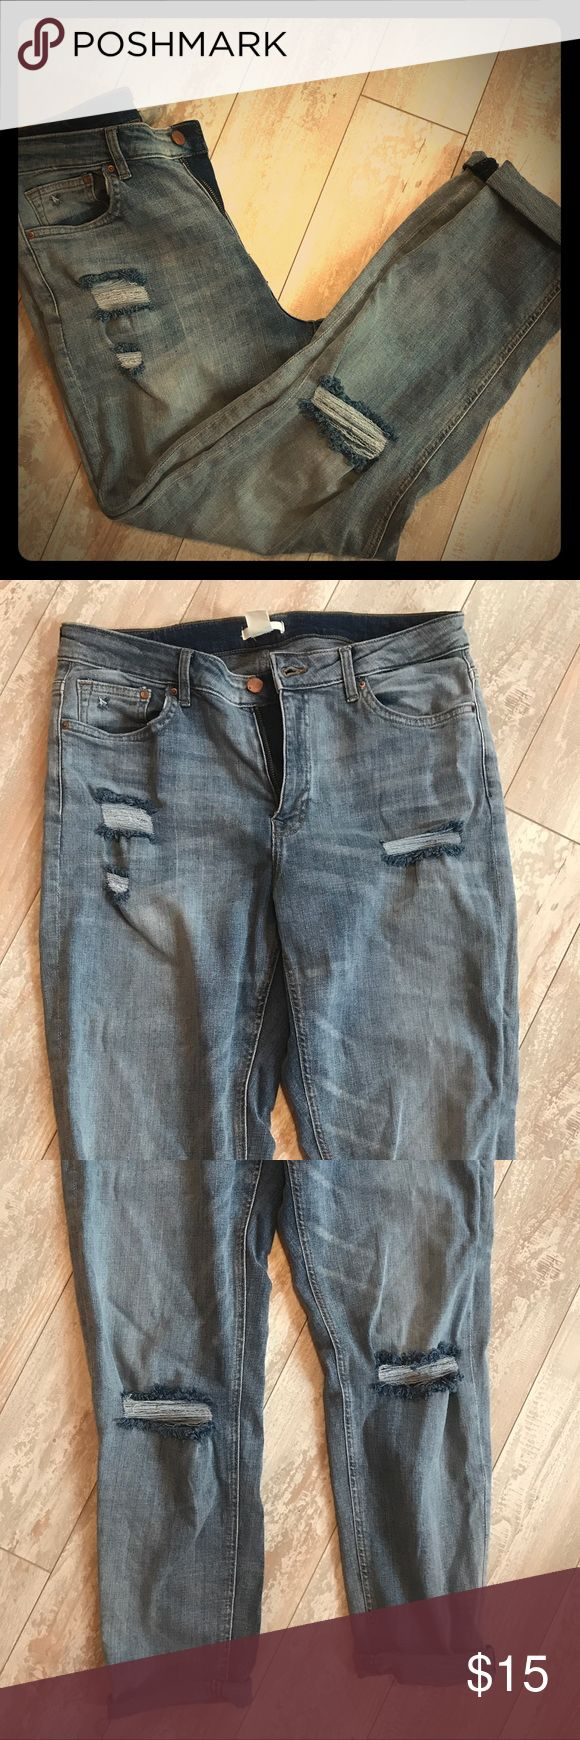 H&M Women Ripped Baggy Jeans Adorable women baggy jeans, distressed with rips. Great paired with a tank and sandals. Super stretchy material. Great jeans for any body type! Worn a few times, great quality. H&M Jeans Boyfriend